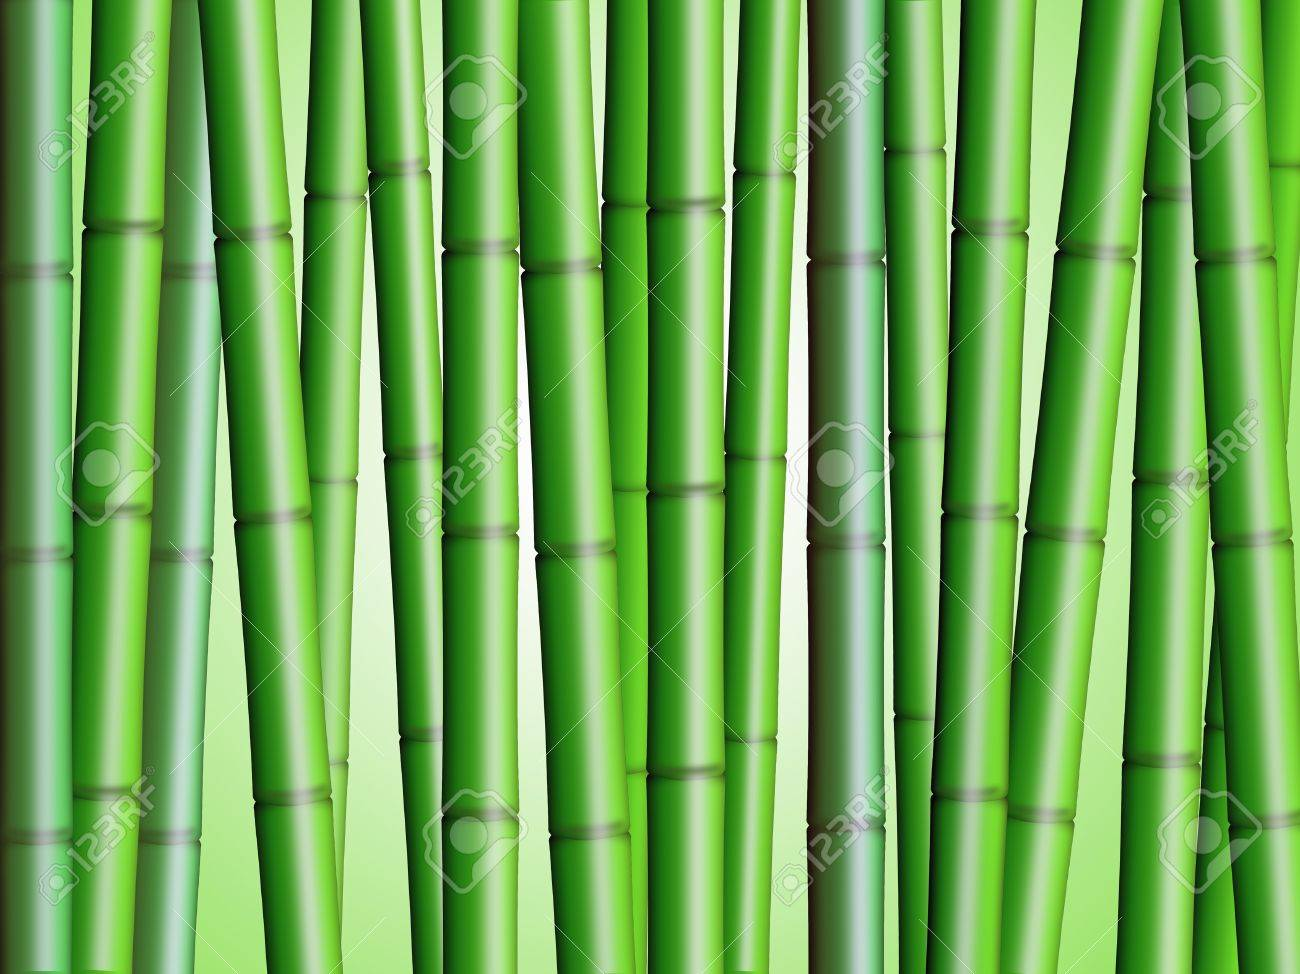 Bamboo Forest Background 2